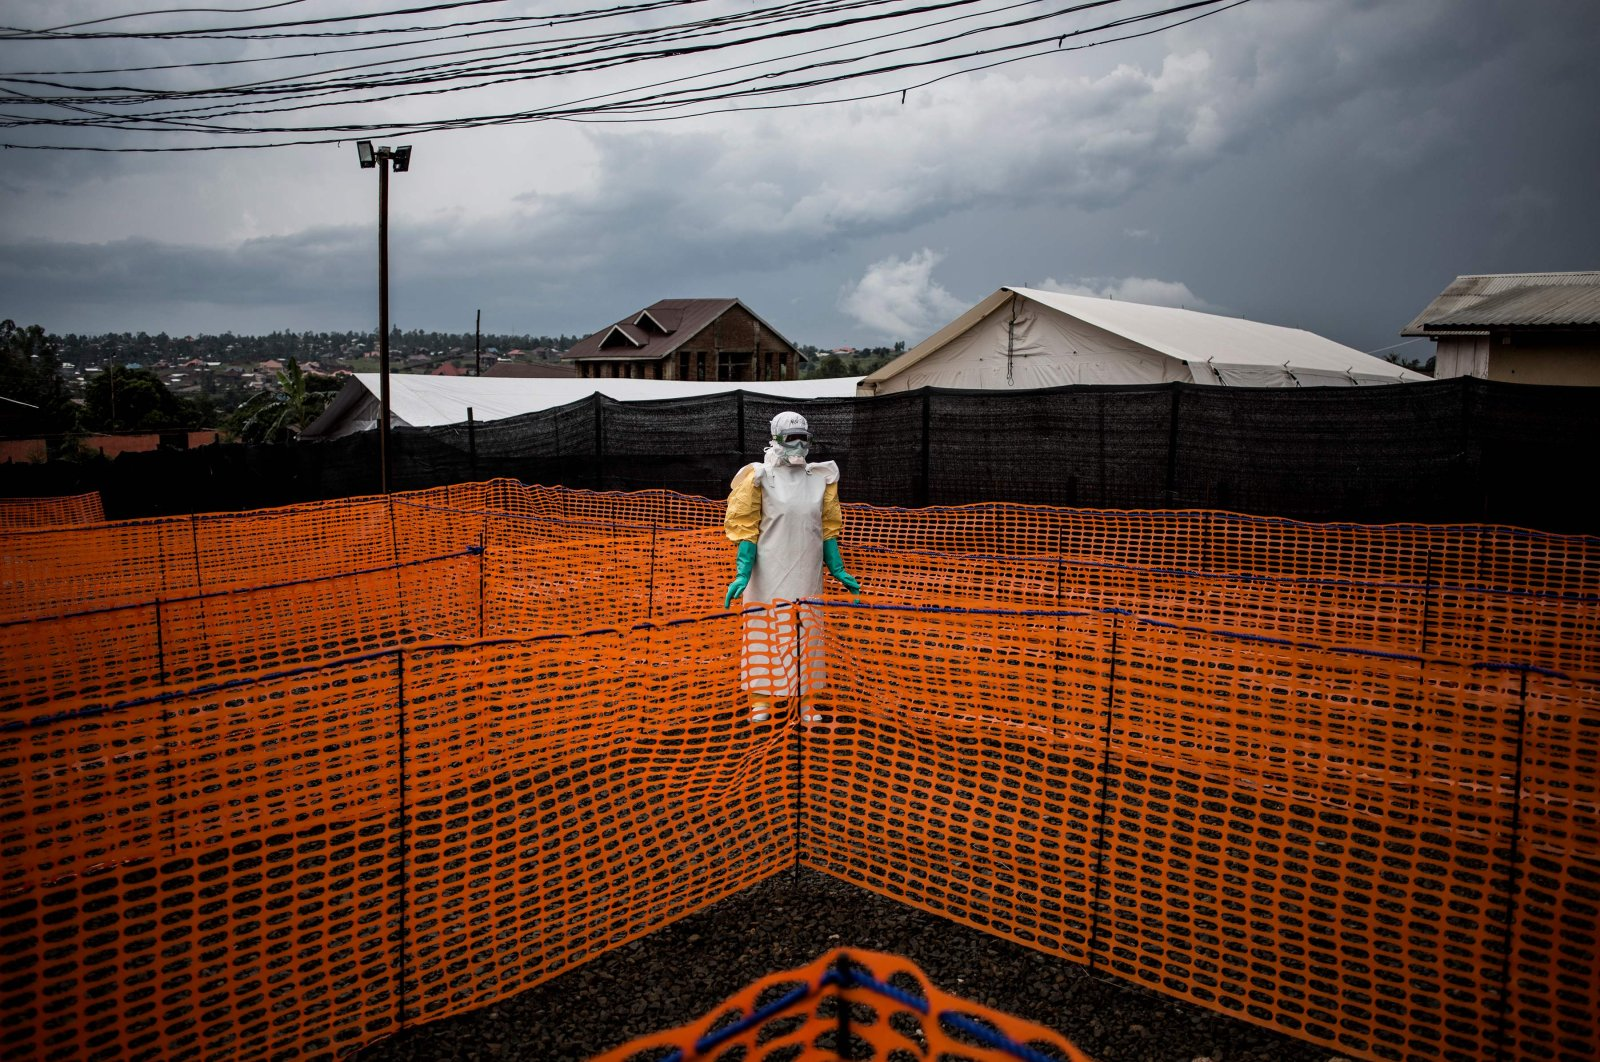 A health worker waits to handle a new unconfirmed Ebola patient at a newly build MSF (Doctors Without Borders) supported Ebola treatment centre (ETC) in Bunia, Democratic Republic of the Congo, Nov. 7, 2018. (AFP Photo)